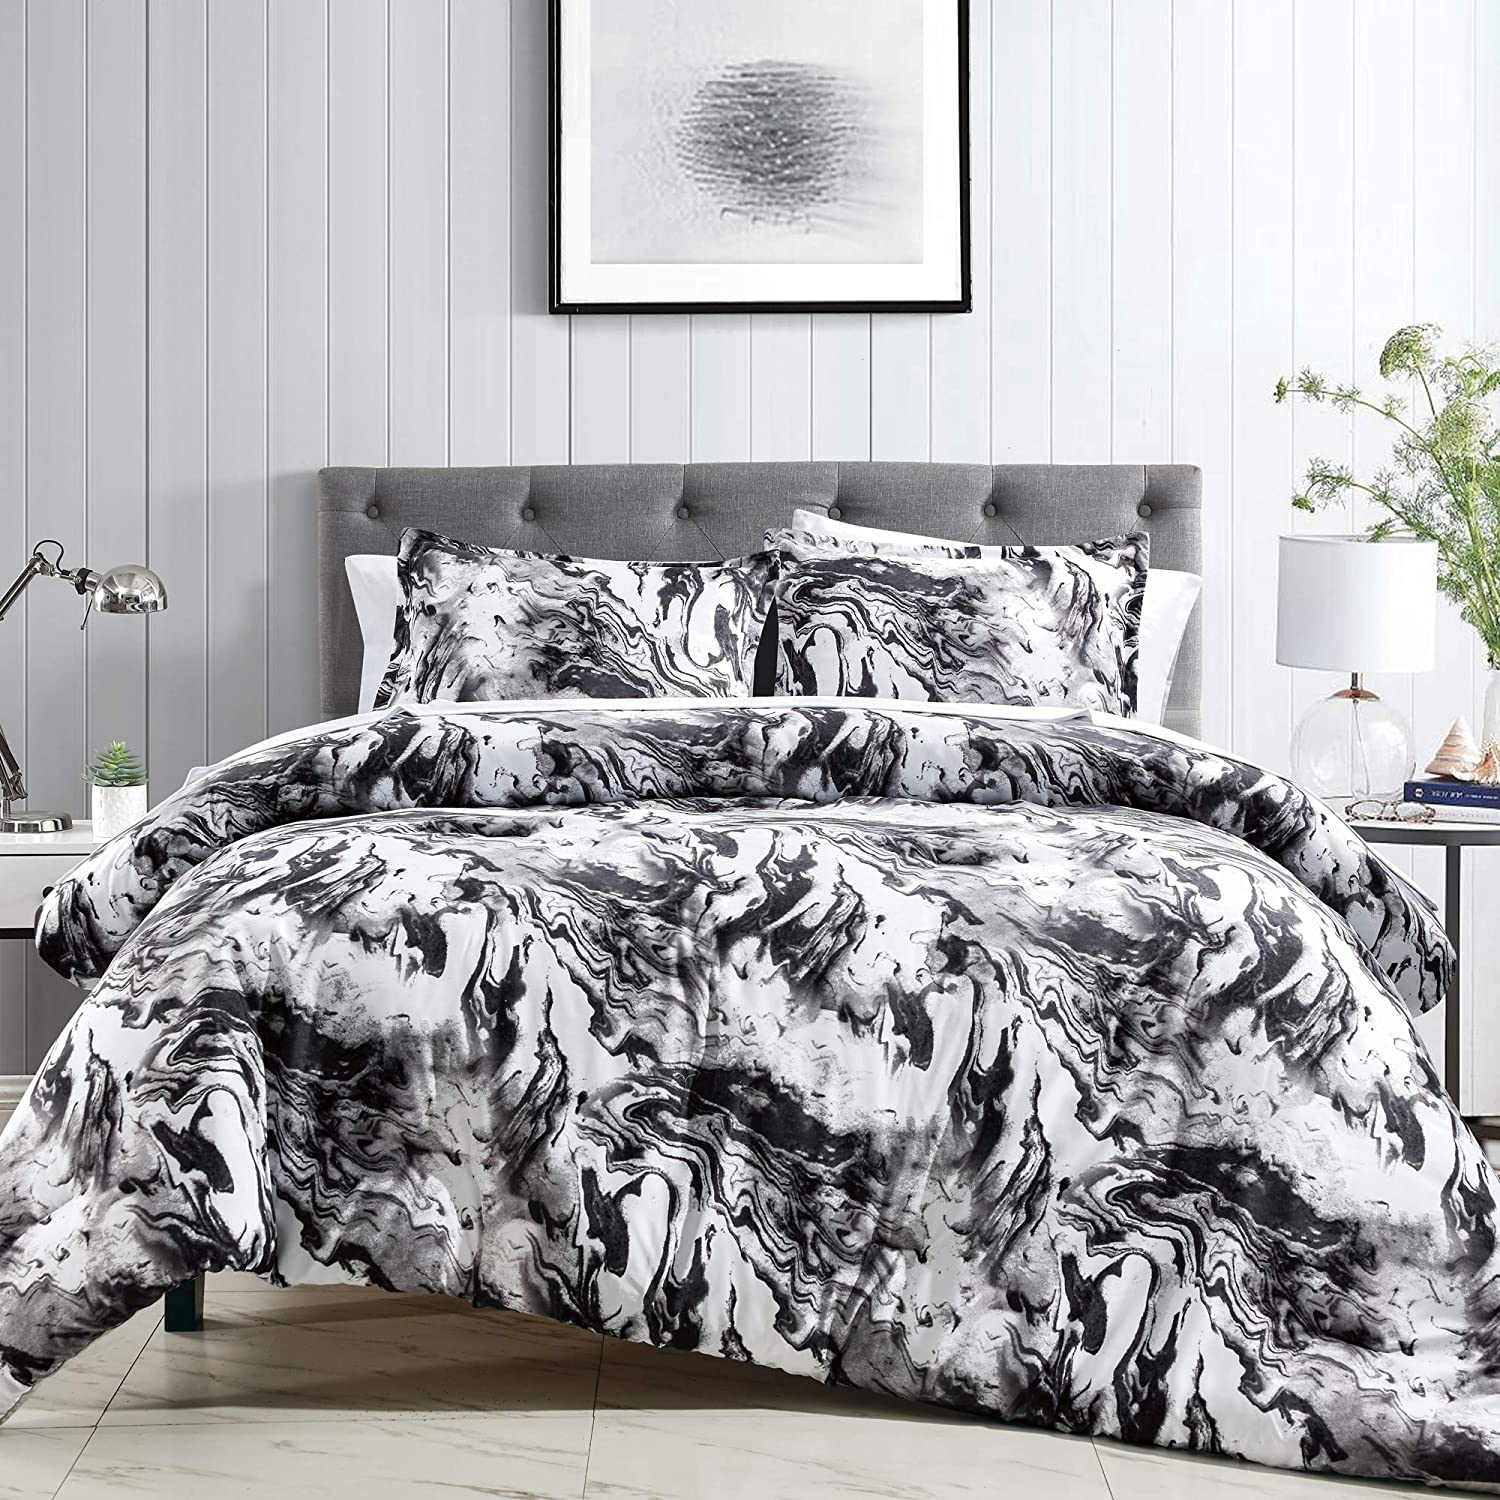 Modern Marble Pattern Queen New product! New type Size Comforter Bed - Max 45% OFF for Set